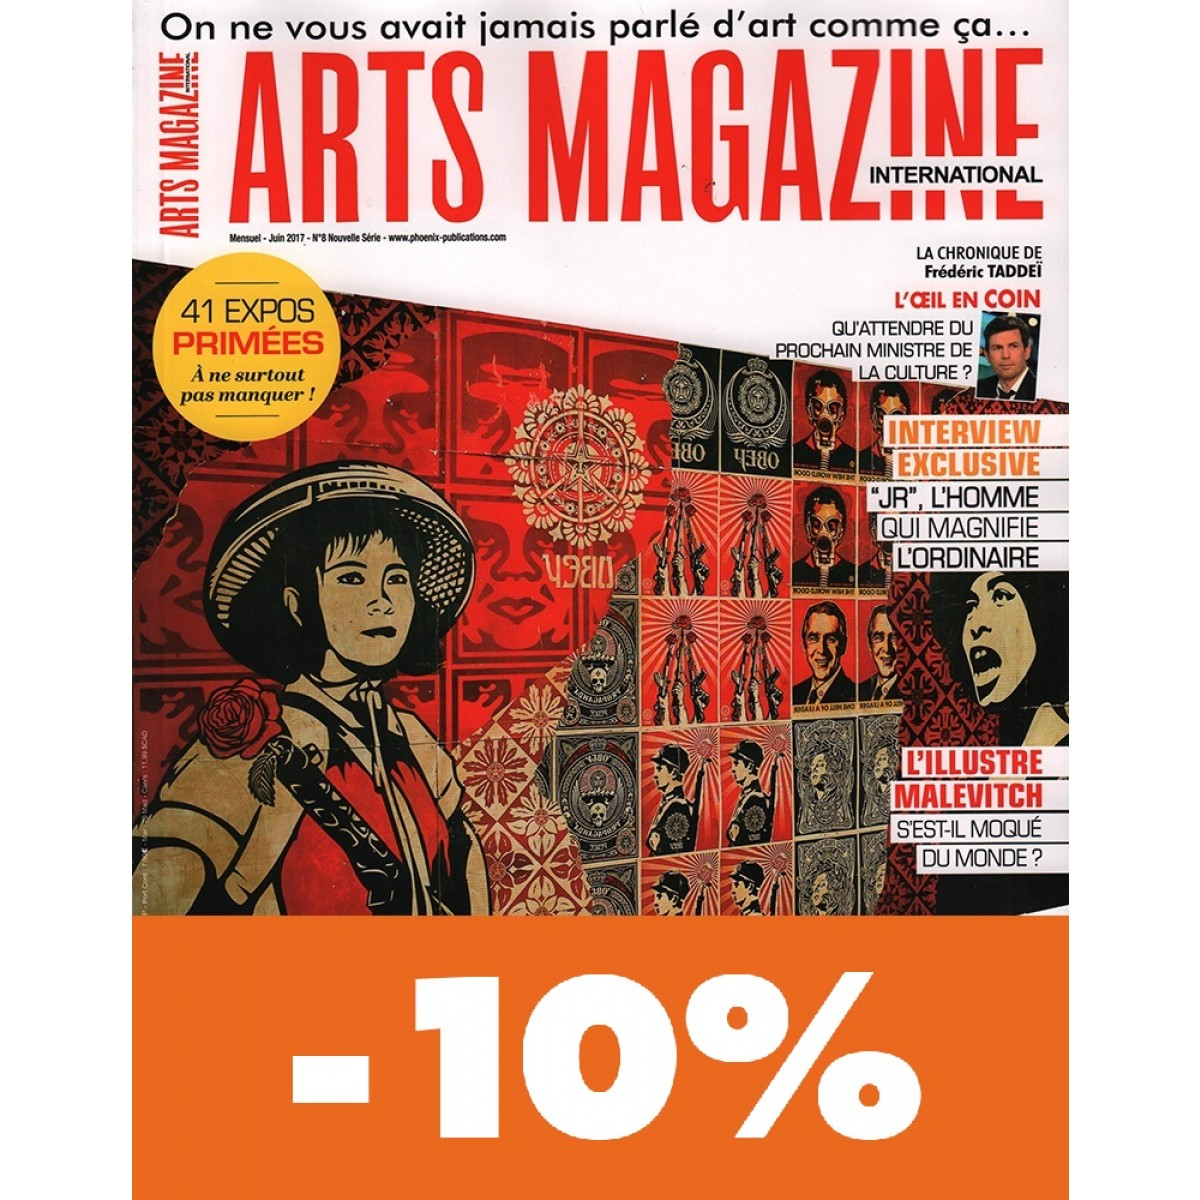 Magazine Pas Cher Arts Magazine International Pas Cher Mag24